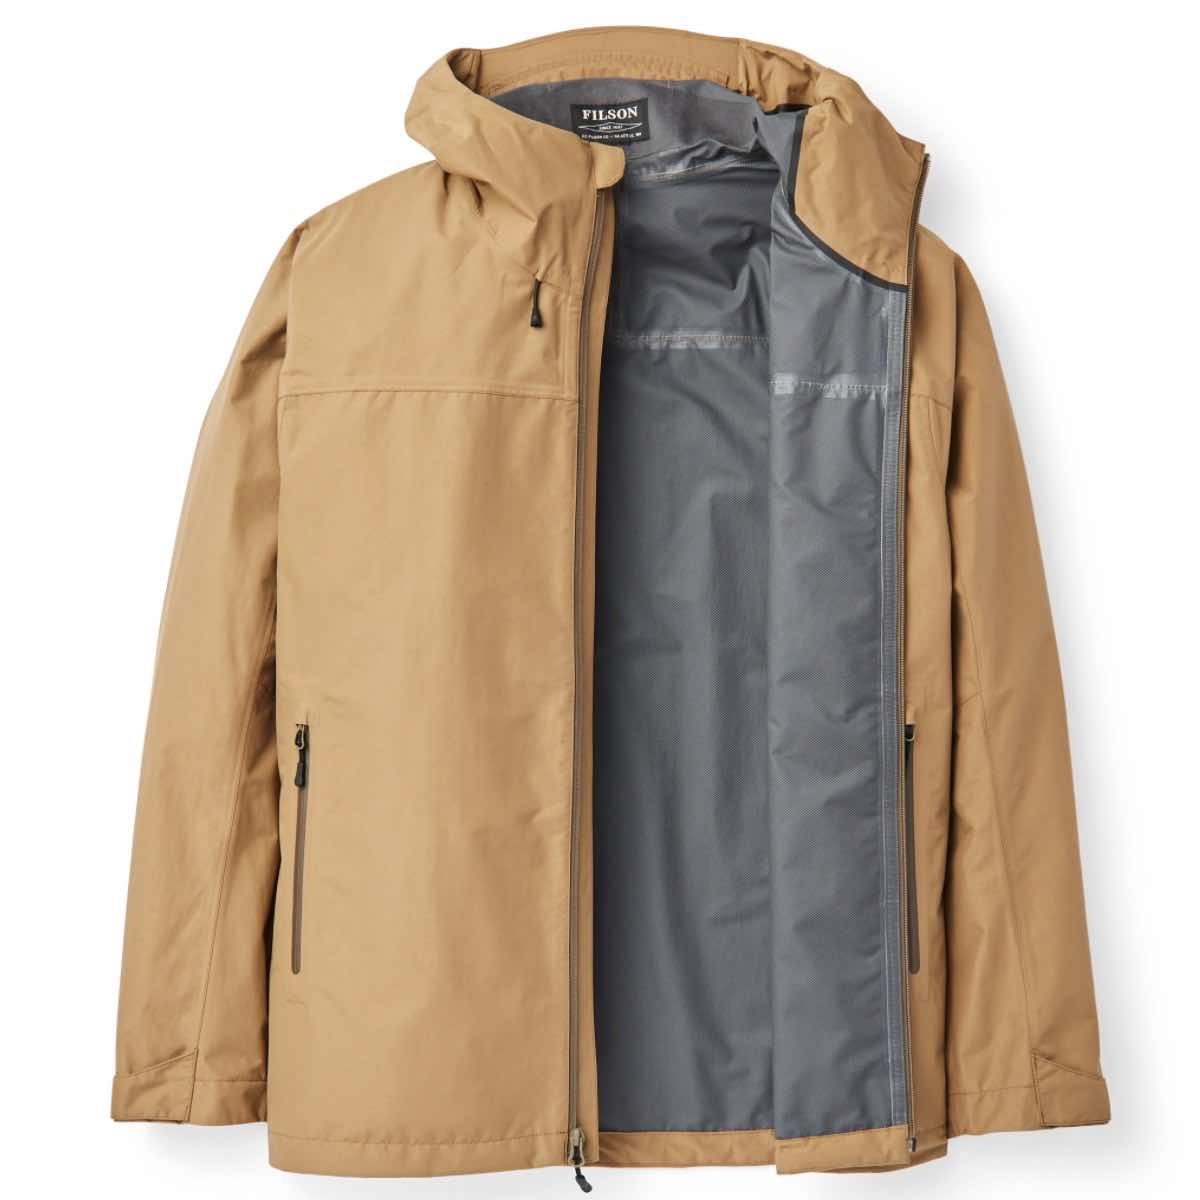 FILSON SWIFTWATER 2.5LAGS SKALLJAKKE HERRE - DARK TAN